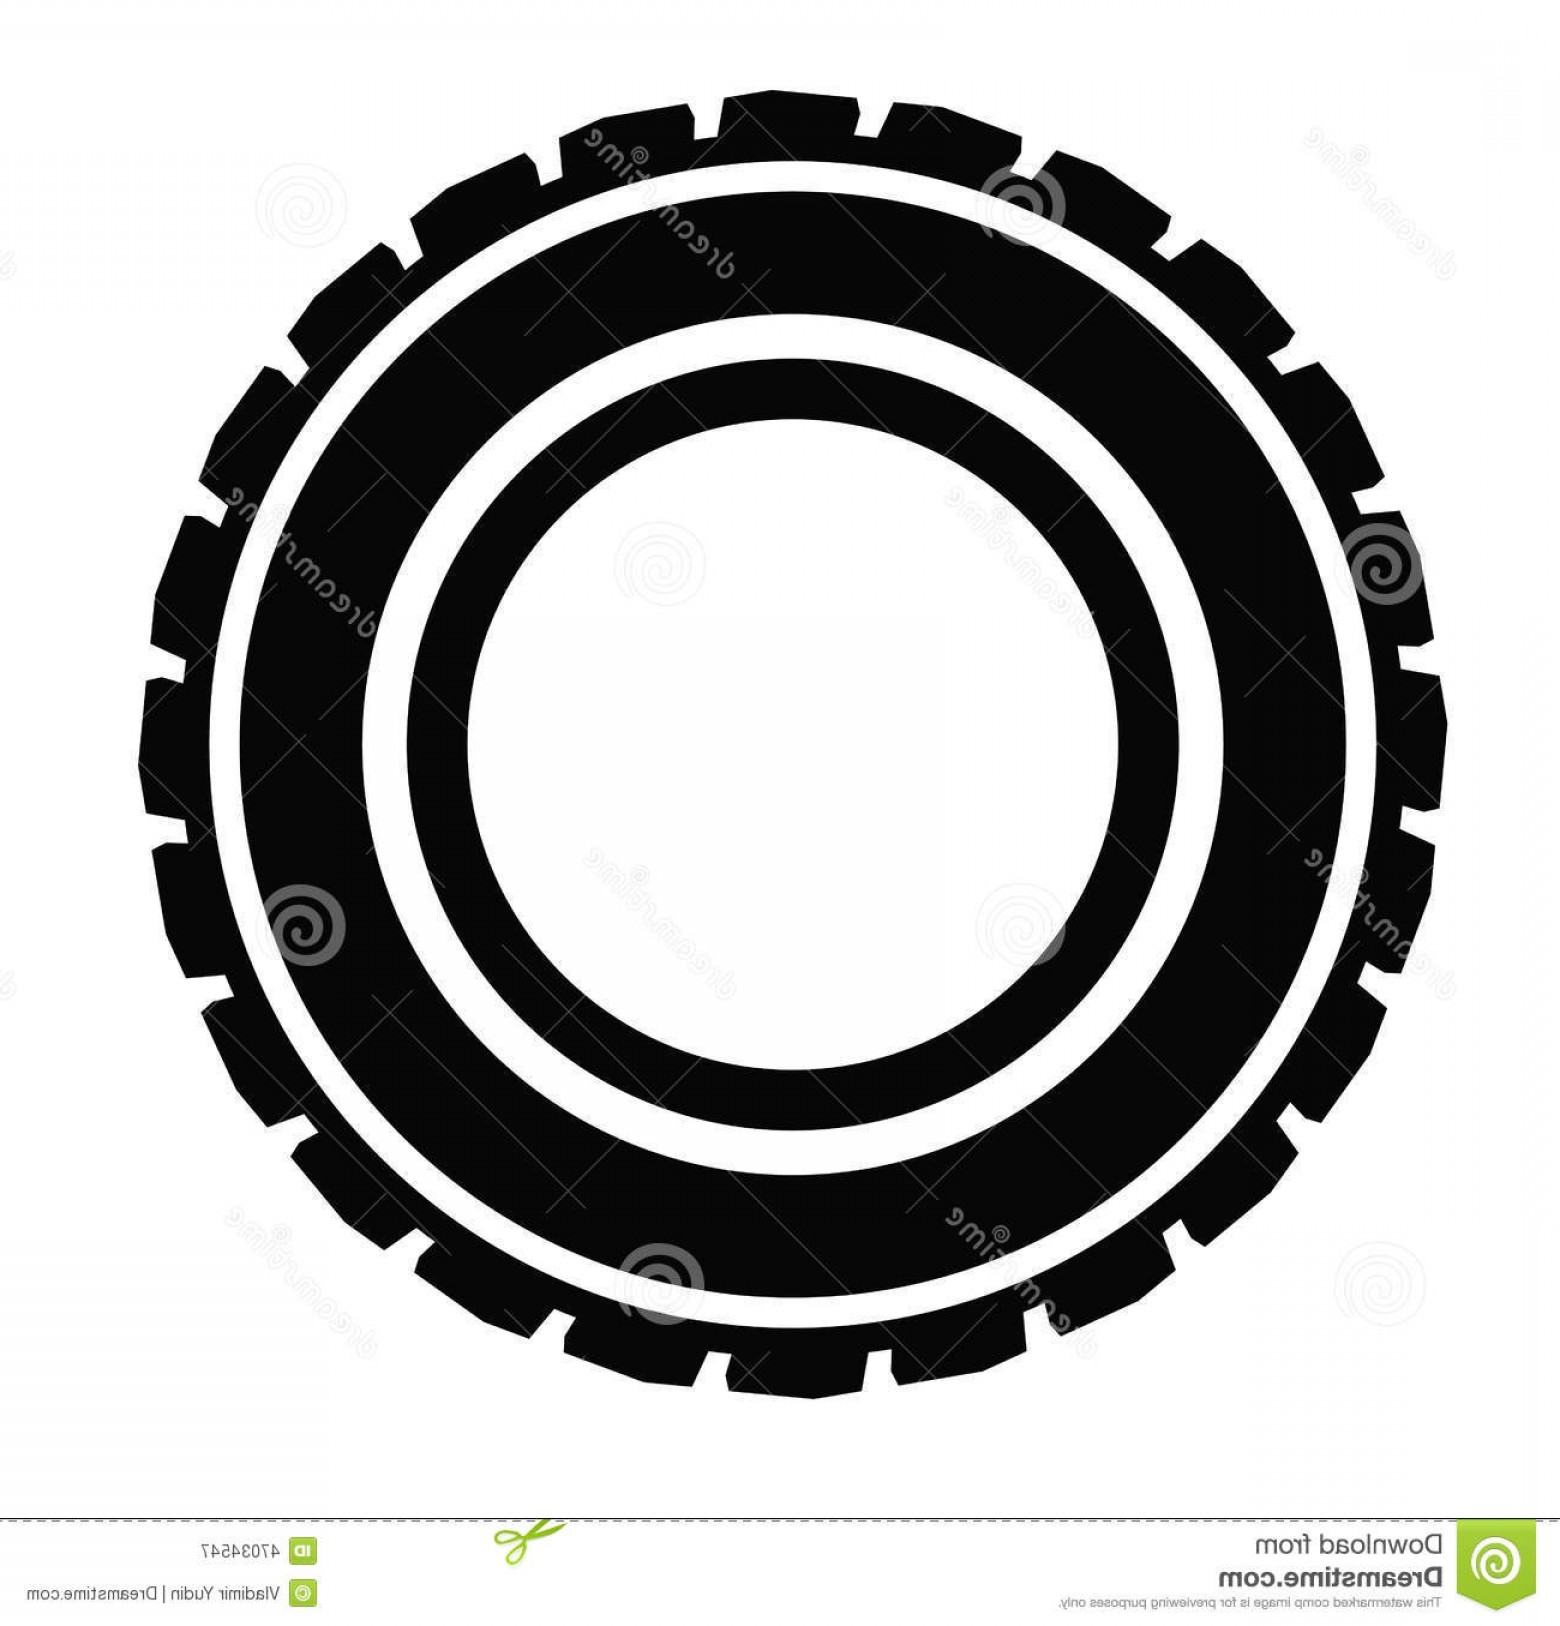 Tire Icon Vector: Stock Illustration Road Tire Vector Black Icon White Background Image